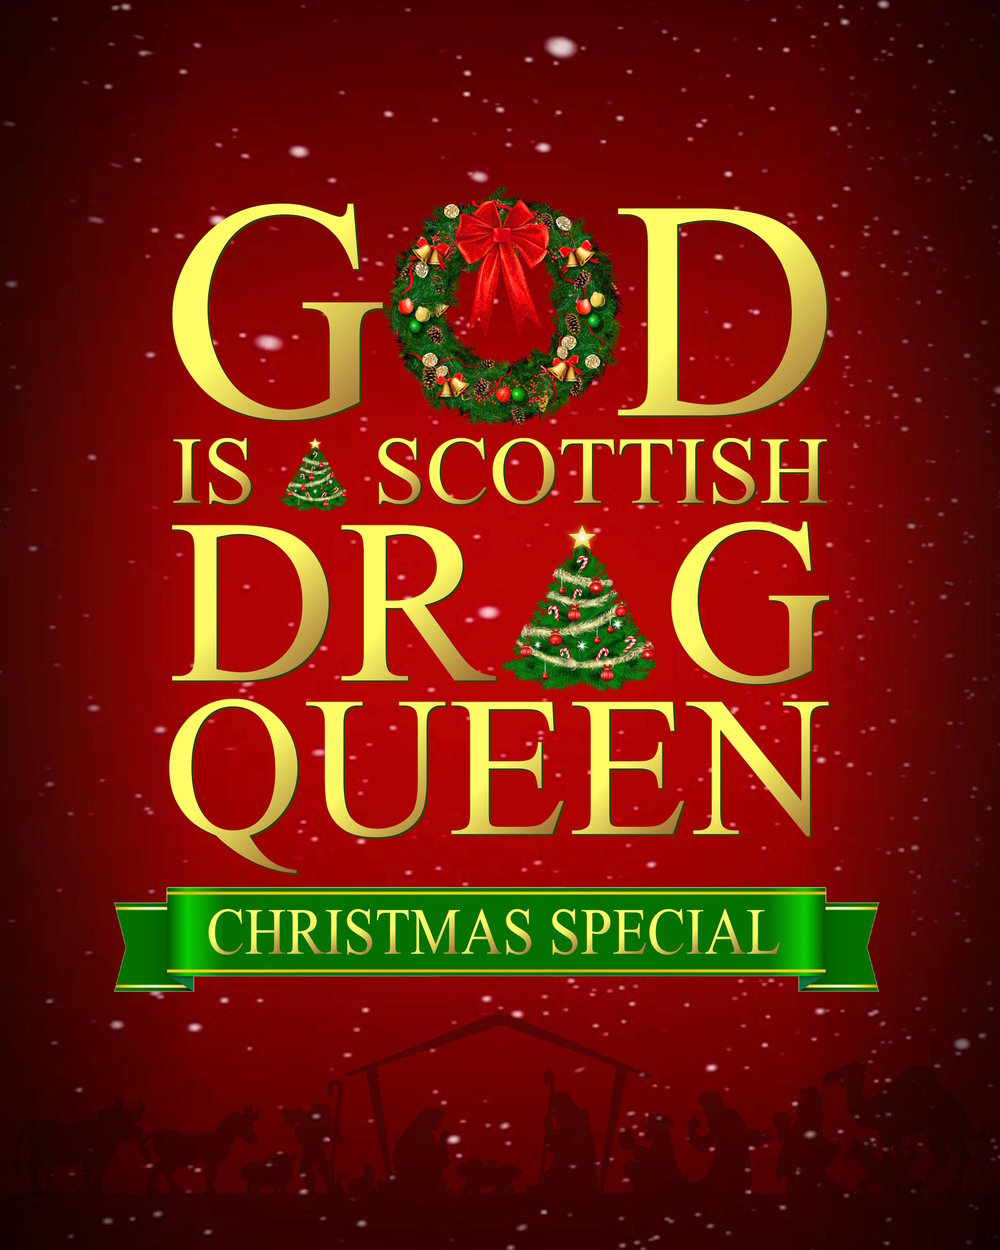 God Is A Scottish Drag Queen: A Christmas Special - God, dressed in a floral power suit, comes down to skewer everything from fruit cake to Boxing Day in an all new and special holiday addition! Featuring an opening act performing all of the holiday favourites this is the best and only way to celebrate Jesus's birthday!On tour Winter 2018